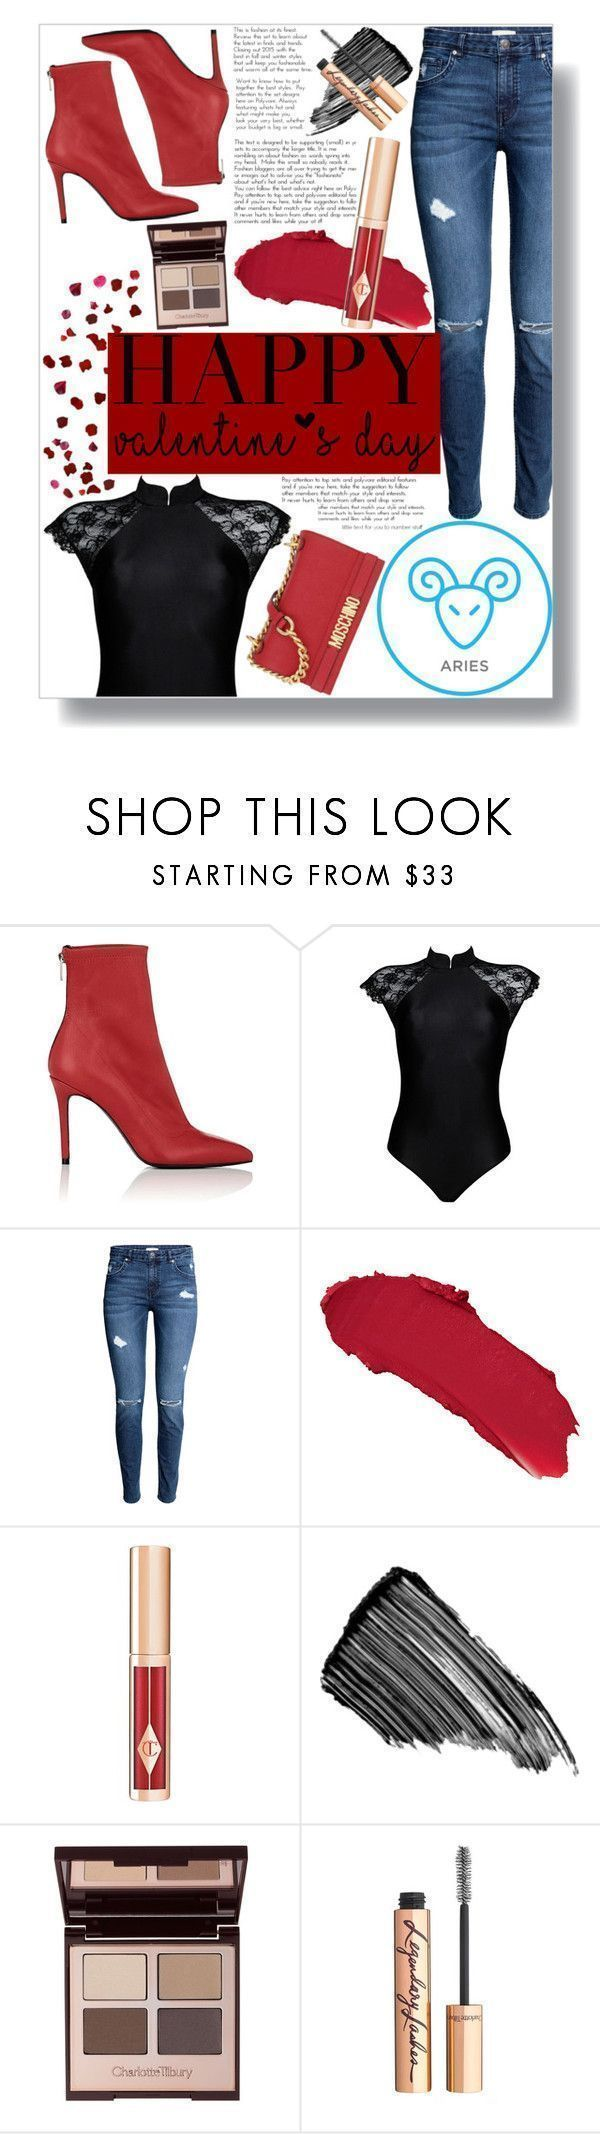 """V-Day Horoscope: Date Night (Aries)"" by sc-styles ❤ liked on Polyvore featuring Barneys New York, OuiHours, Charlotte Tilbury, Sisley and Moschino #horoscopesdates"